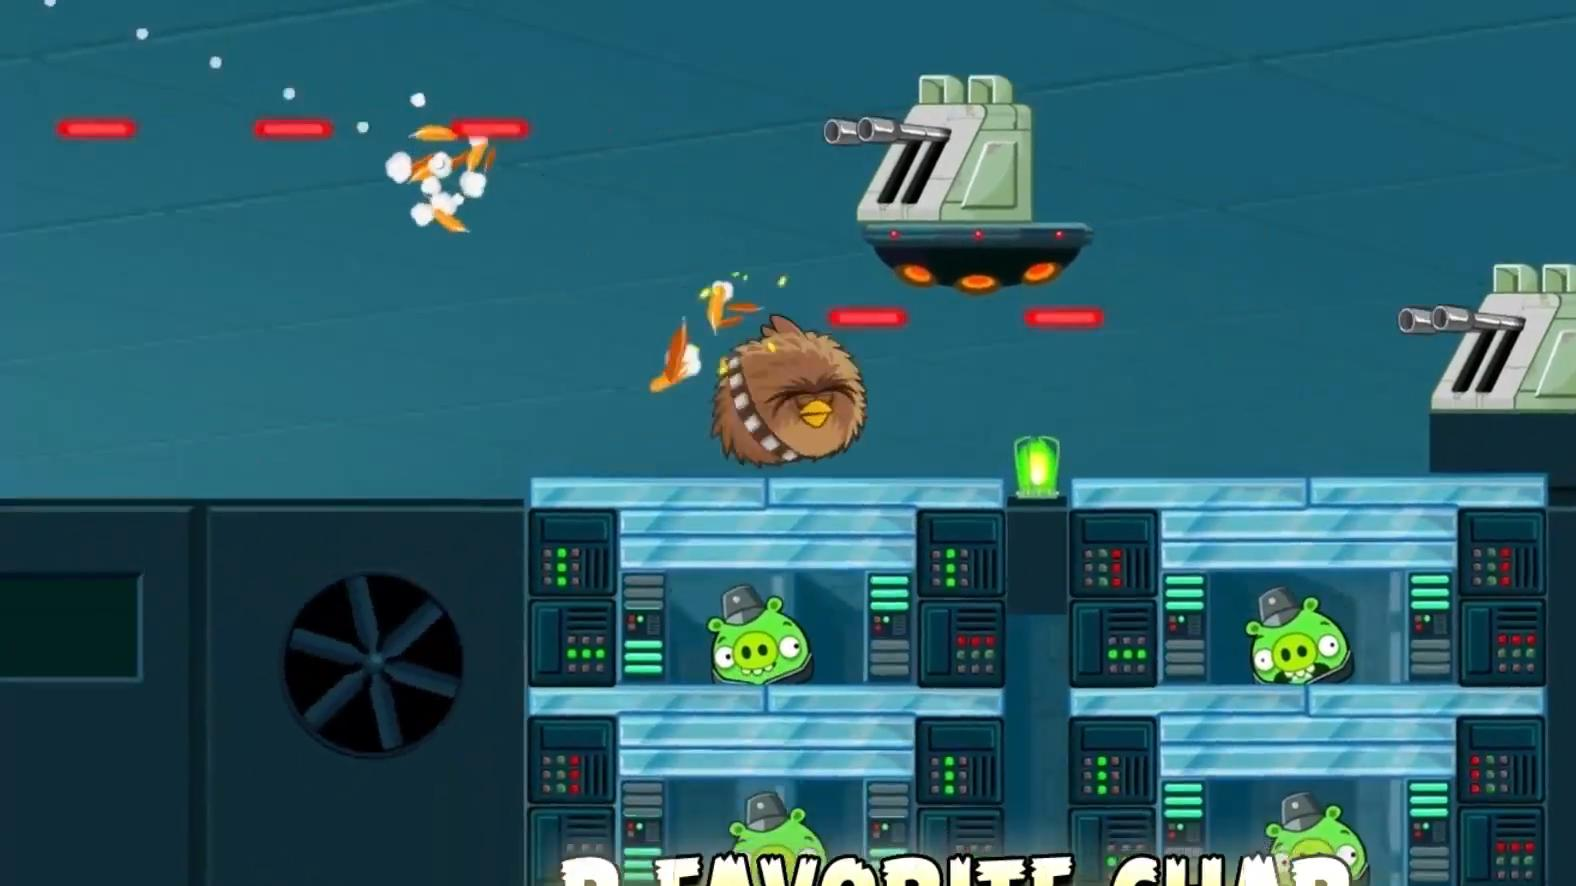 angry birds star wars game for pc full version download science fiction ethical hacking. Black Bedroom Furniture Sets. Home Design Ideas